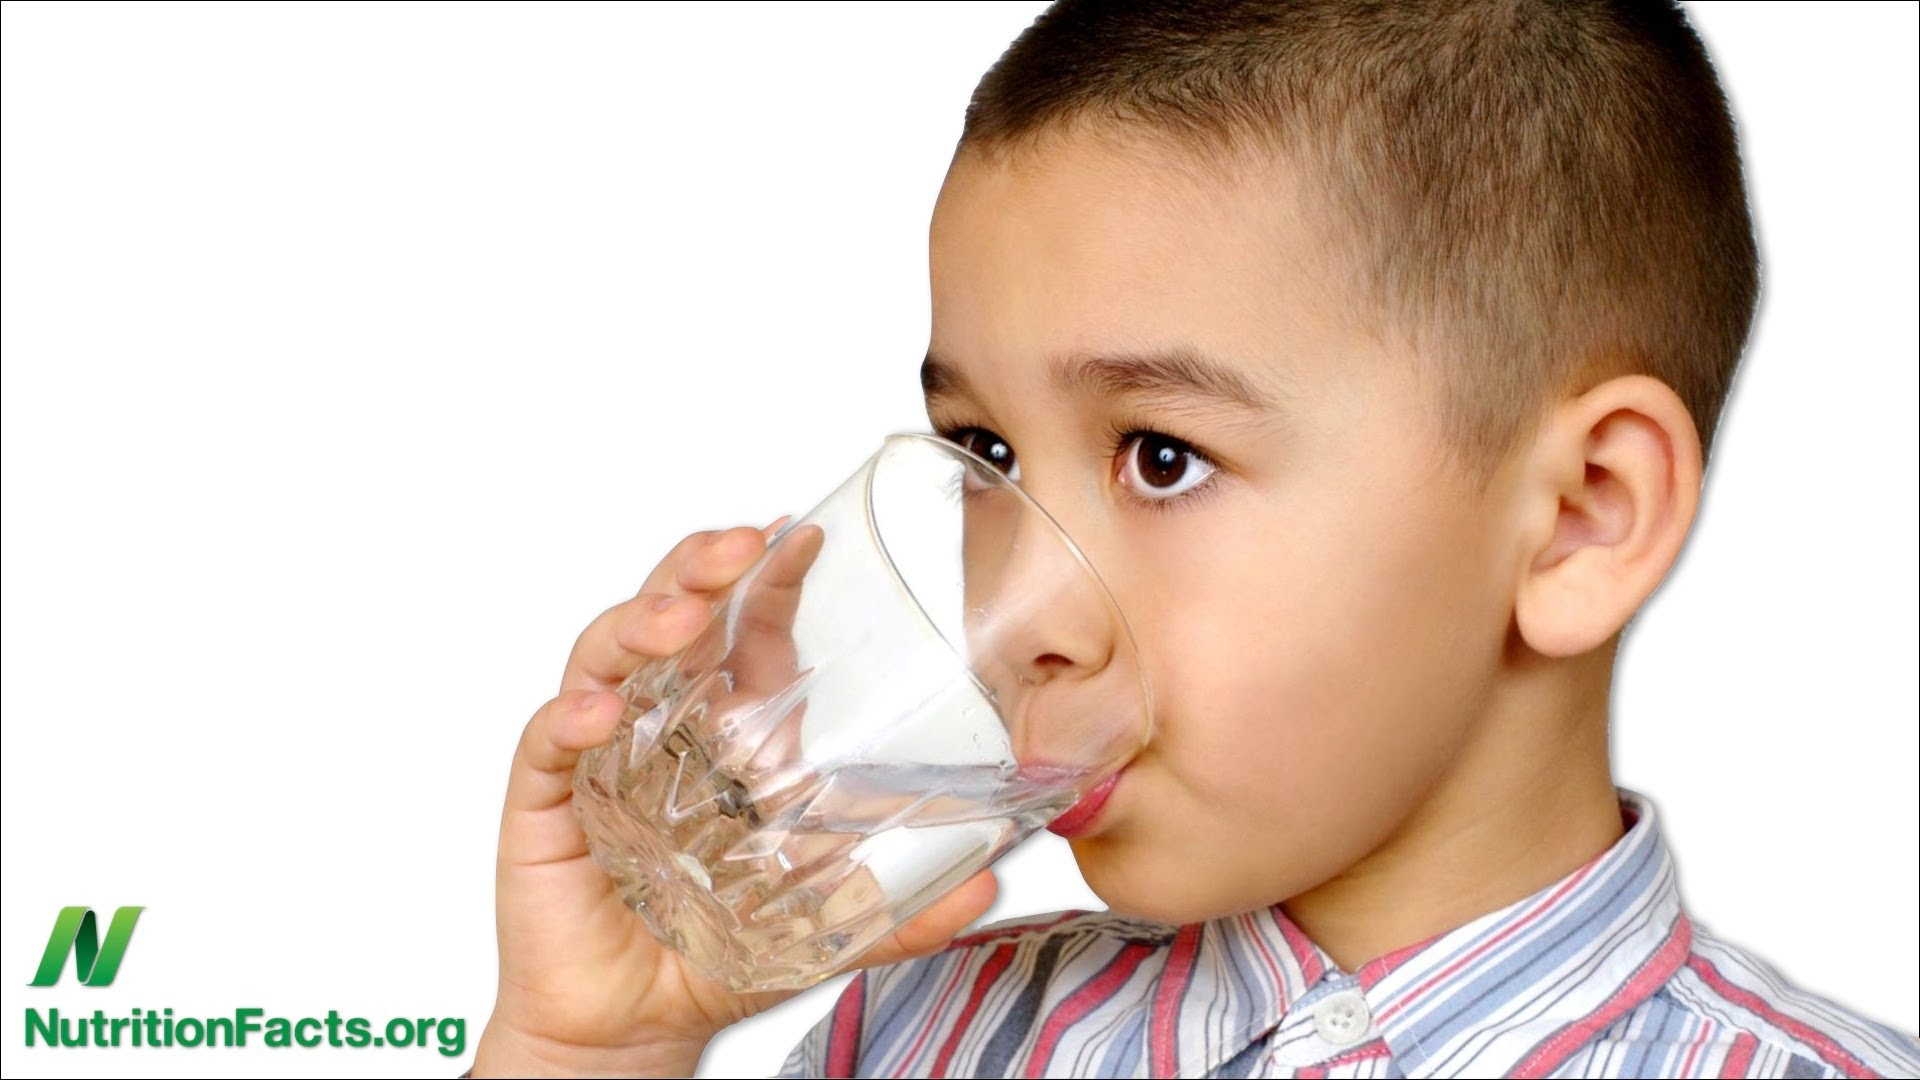 Can Children Drink Alcohol With Meal